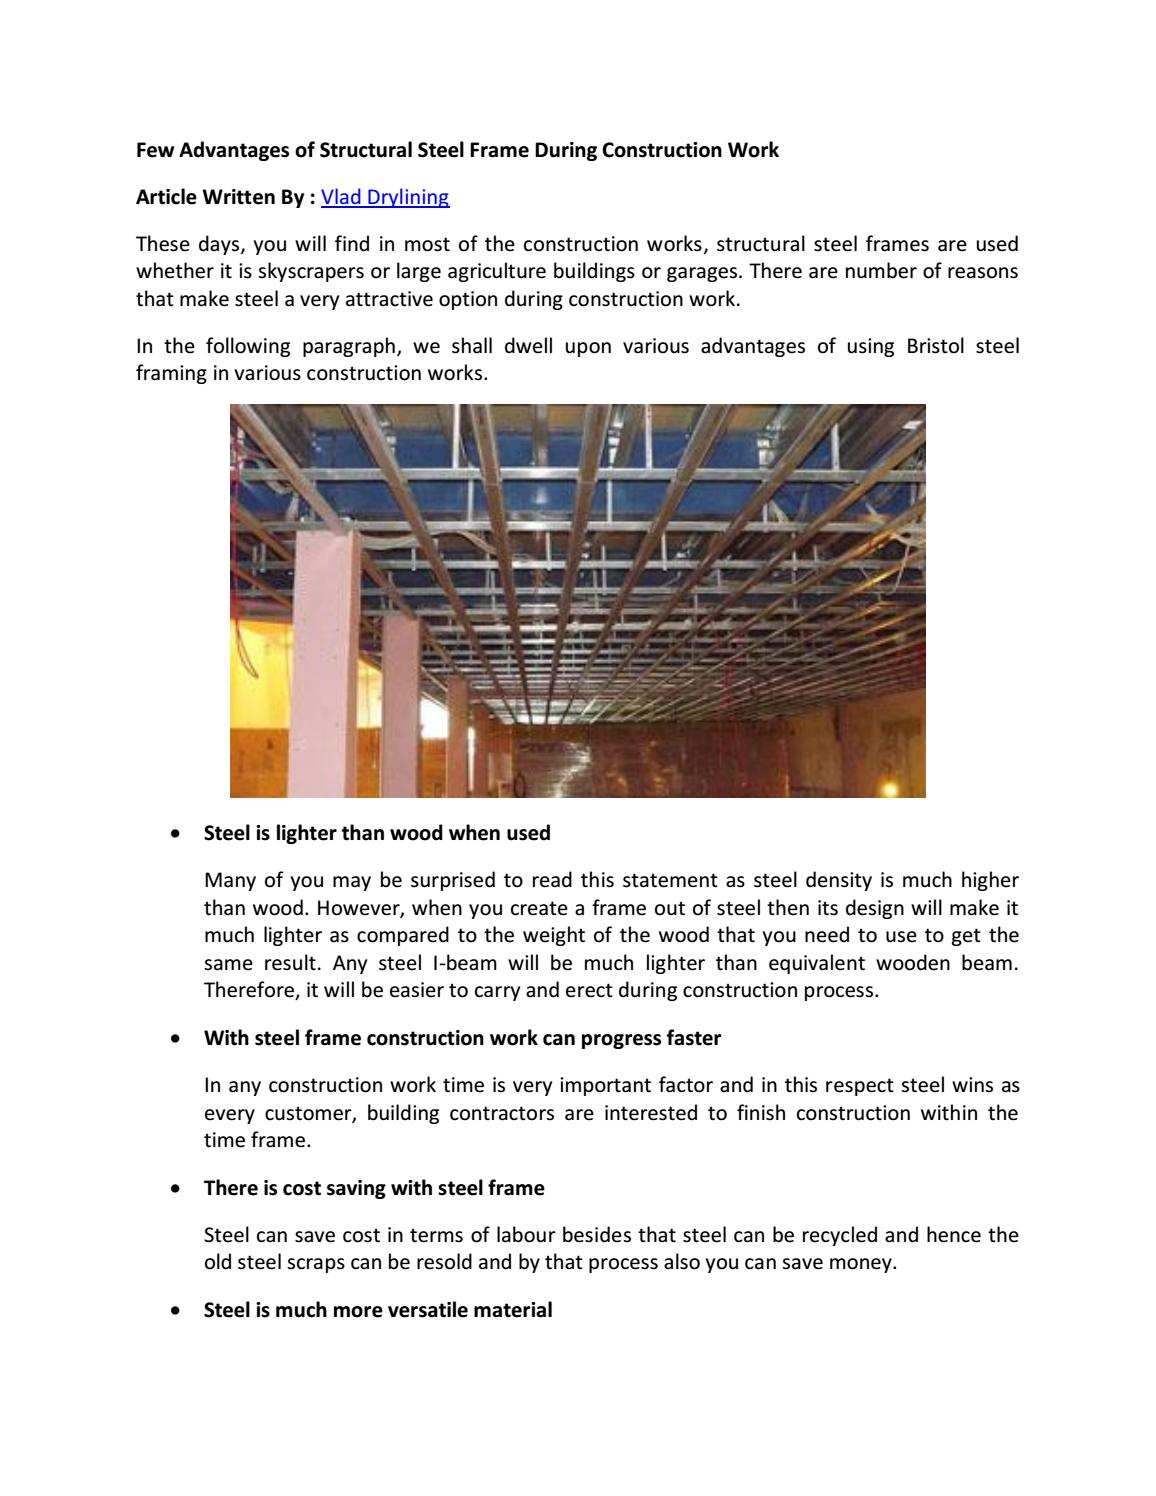 Few advantages of structural steel frame during construction work by ...